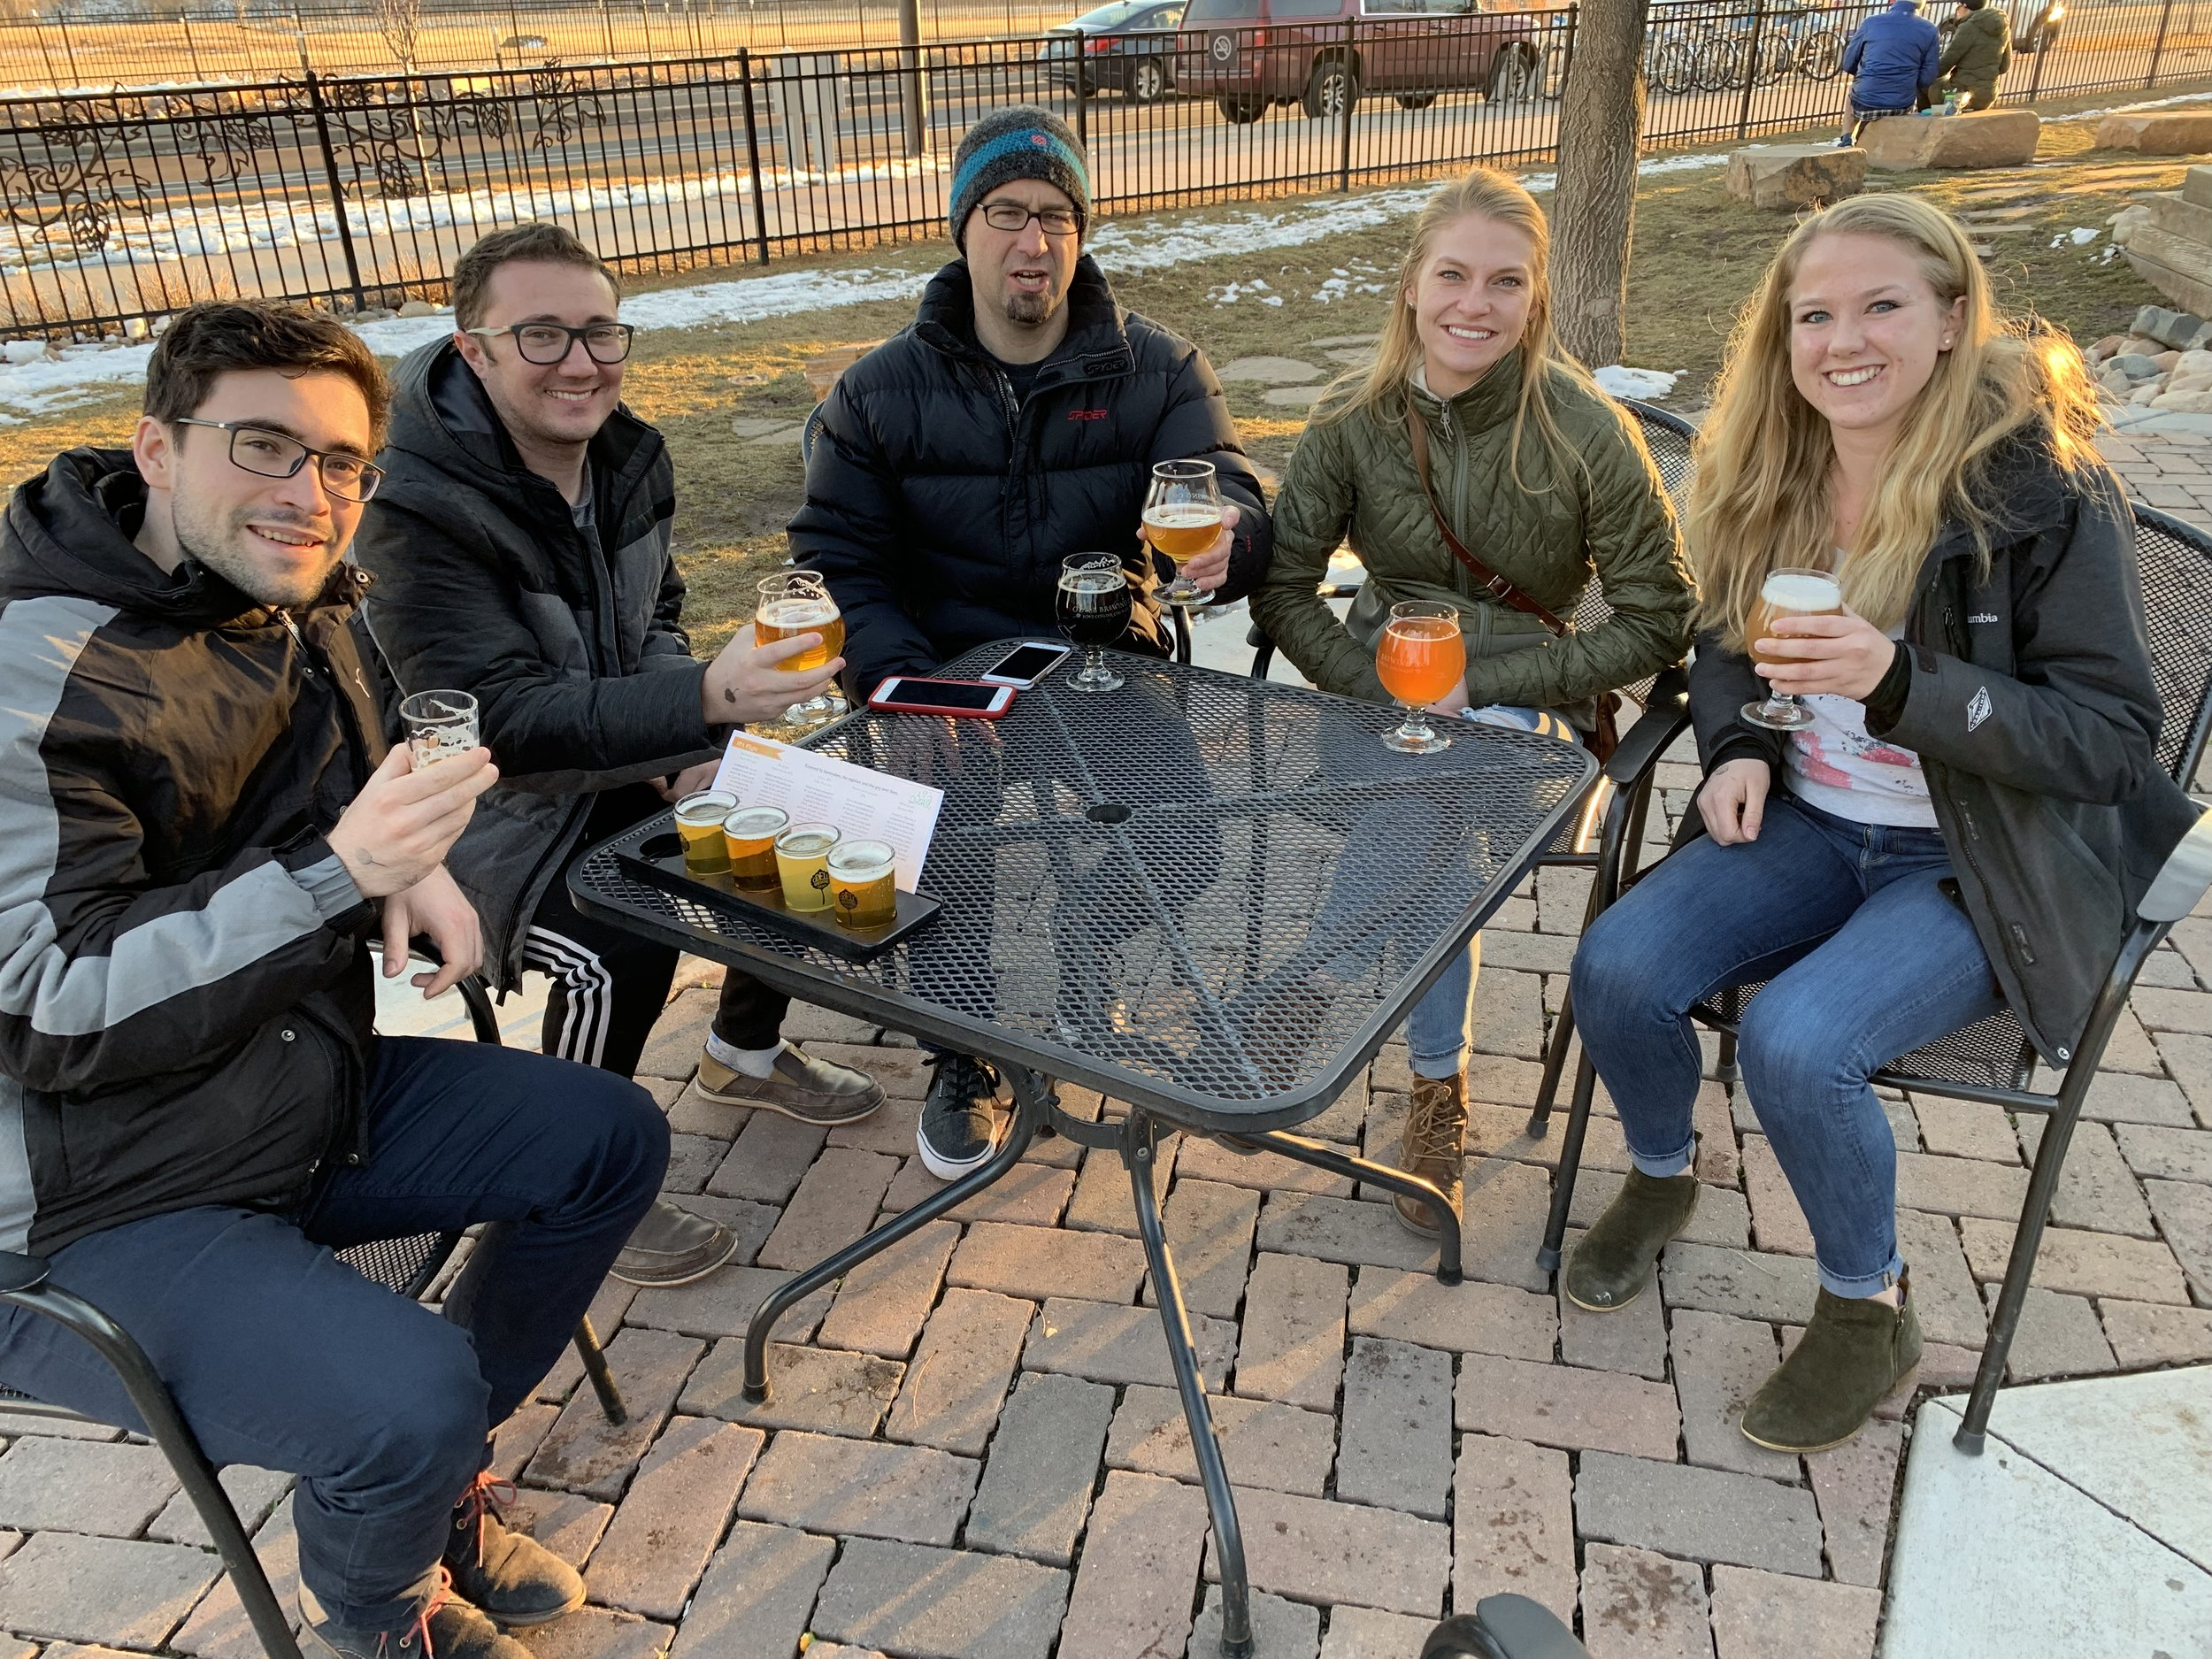 The Hoerndli Lab Chillin at Odell's to toast the arrival of a visit from switzerland: Csaba Bogliari